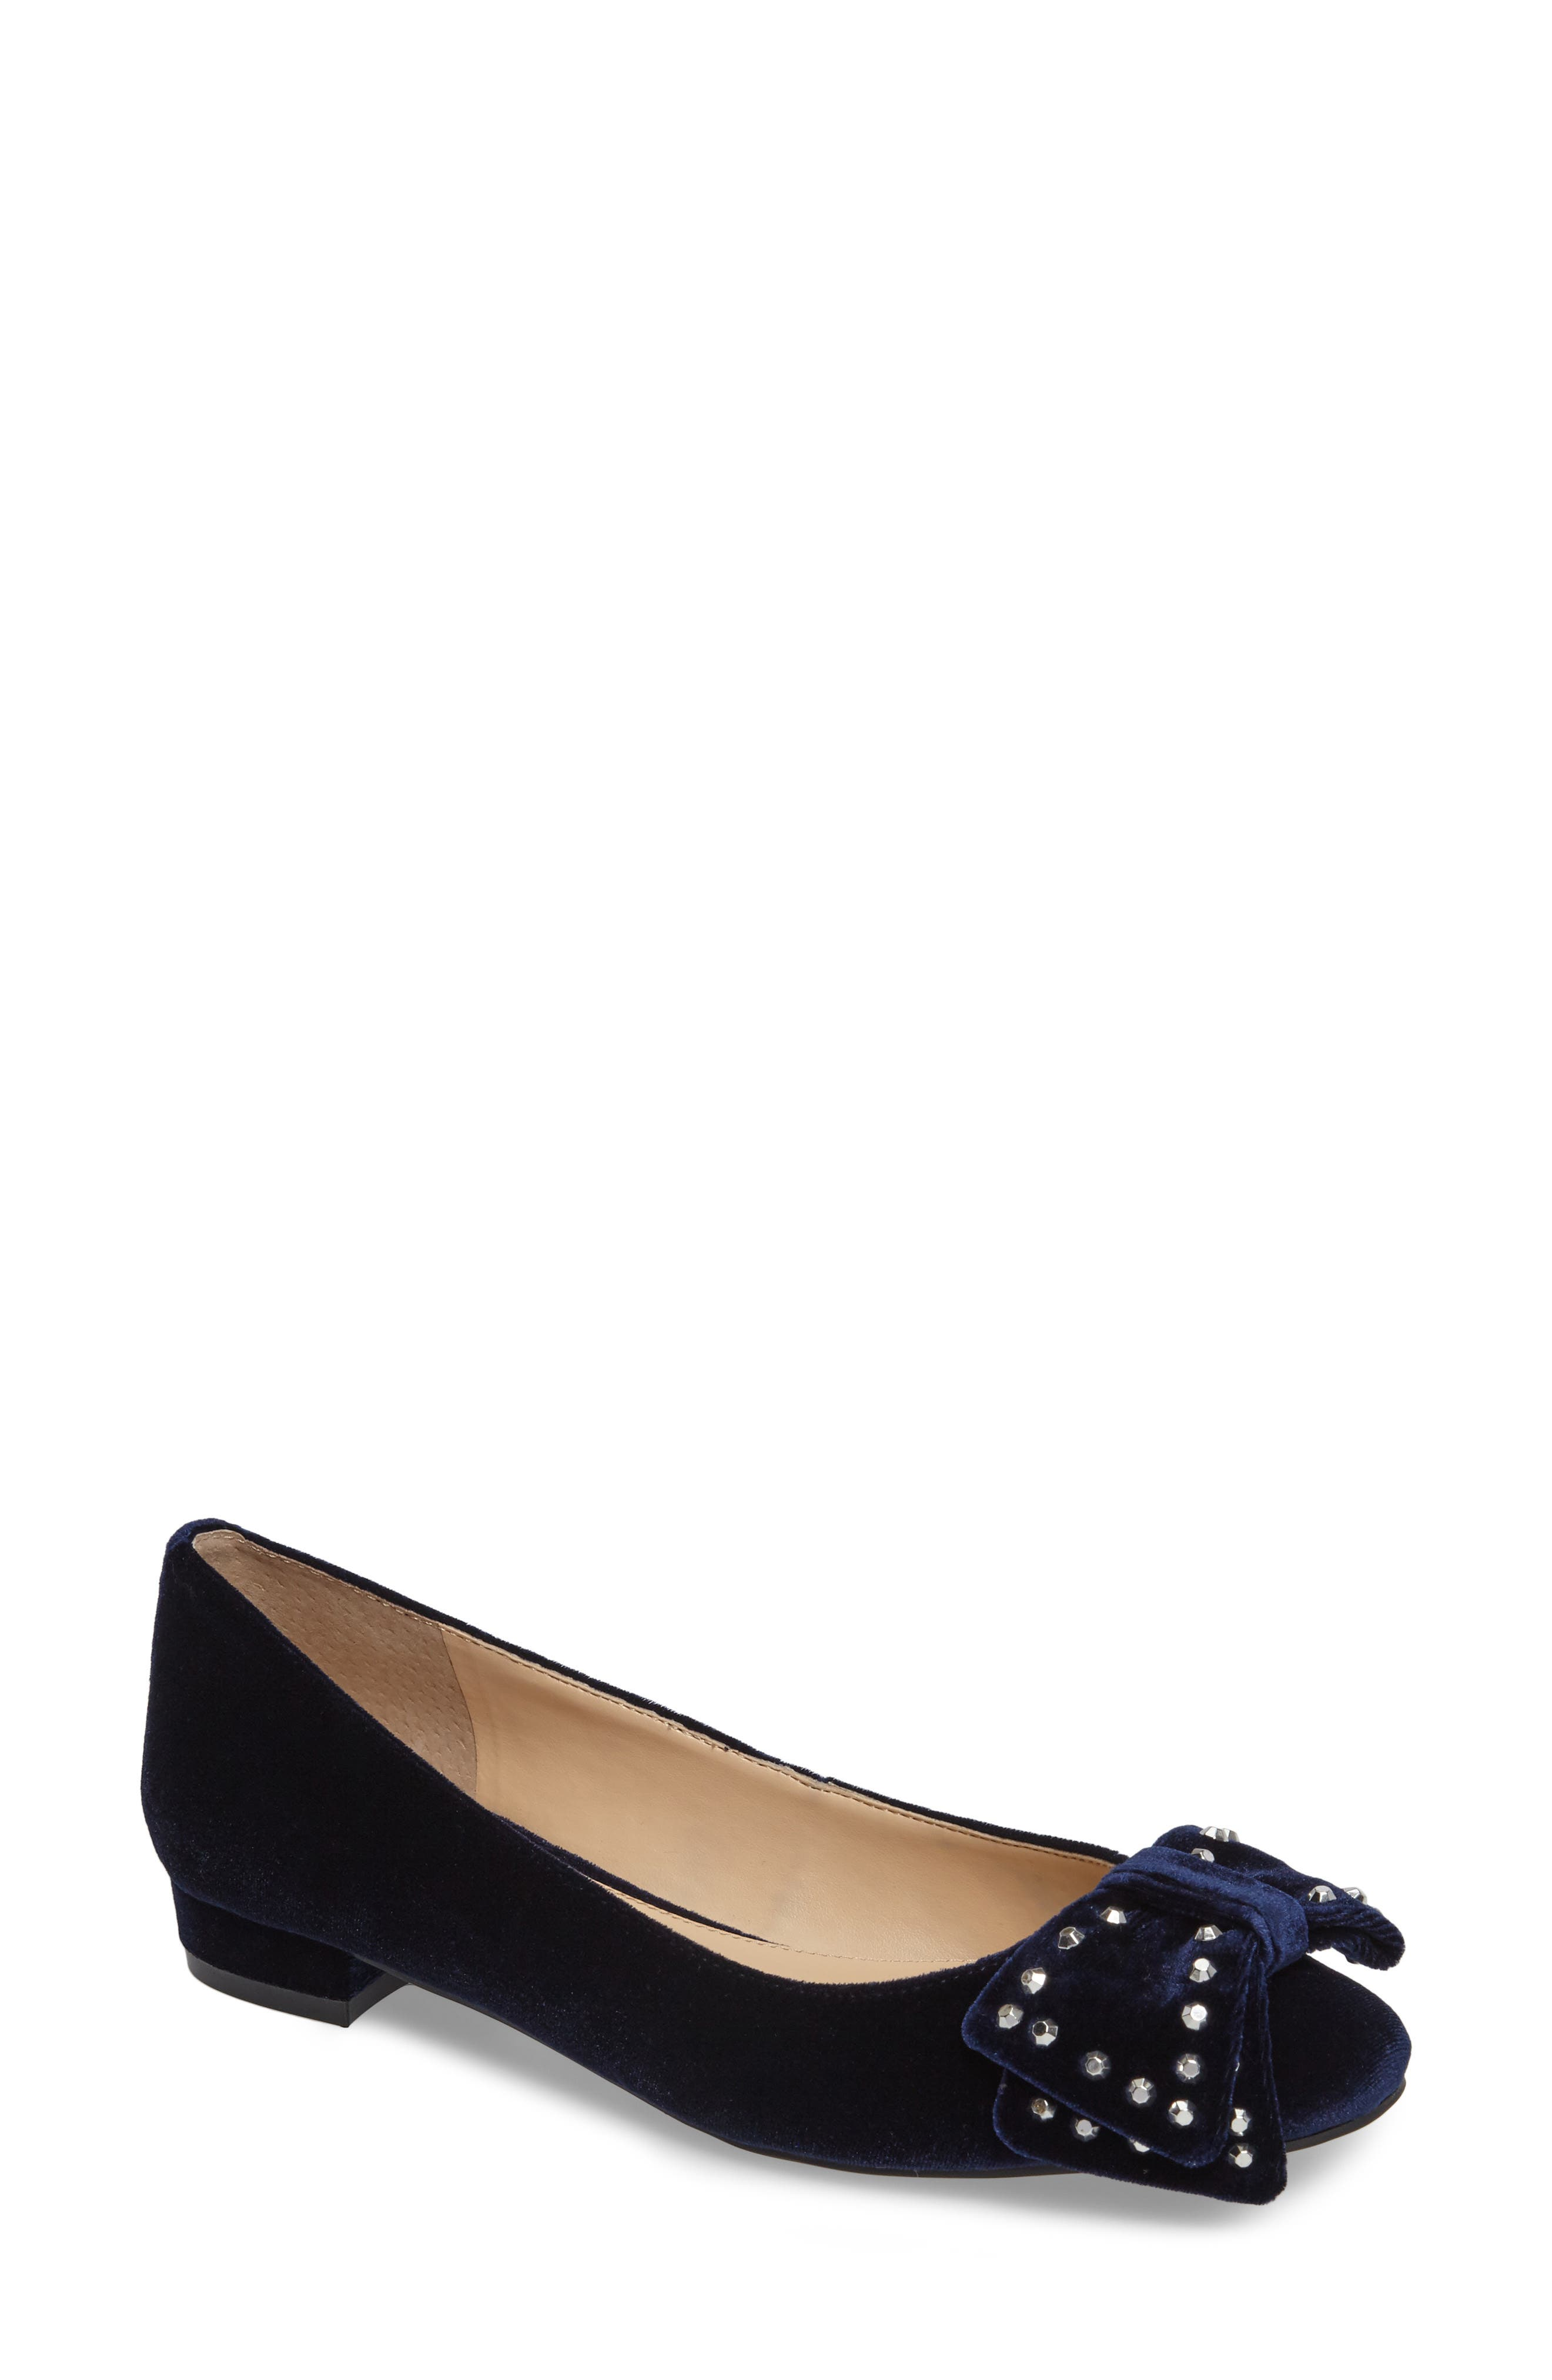 Vince Camuto Annaley Flat (Women)